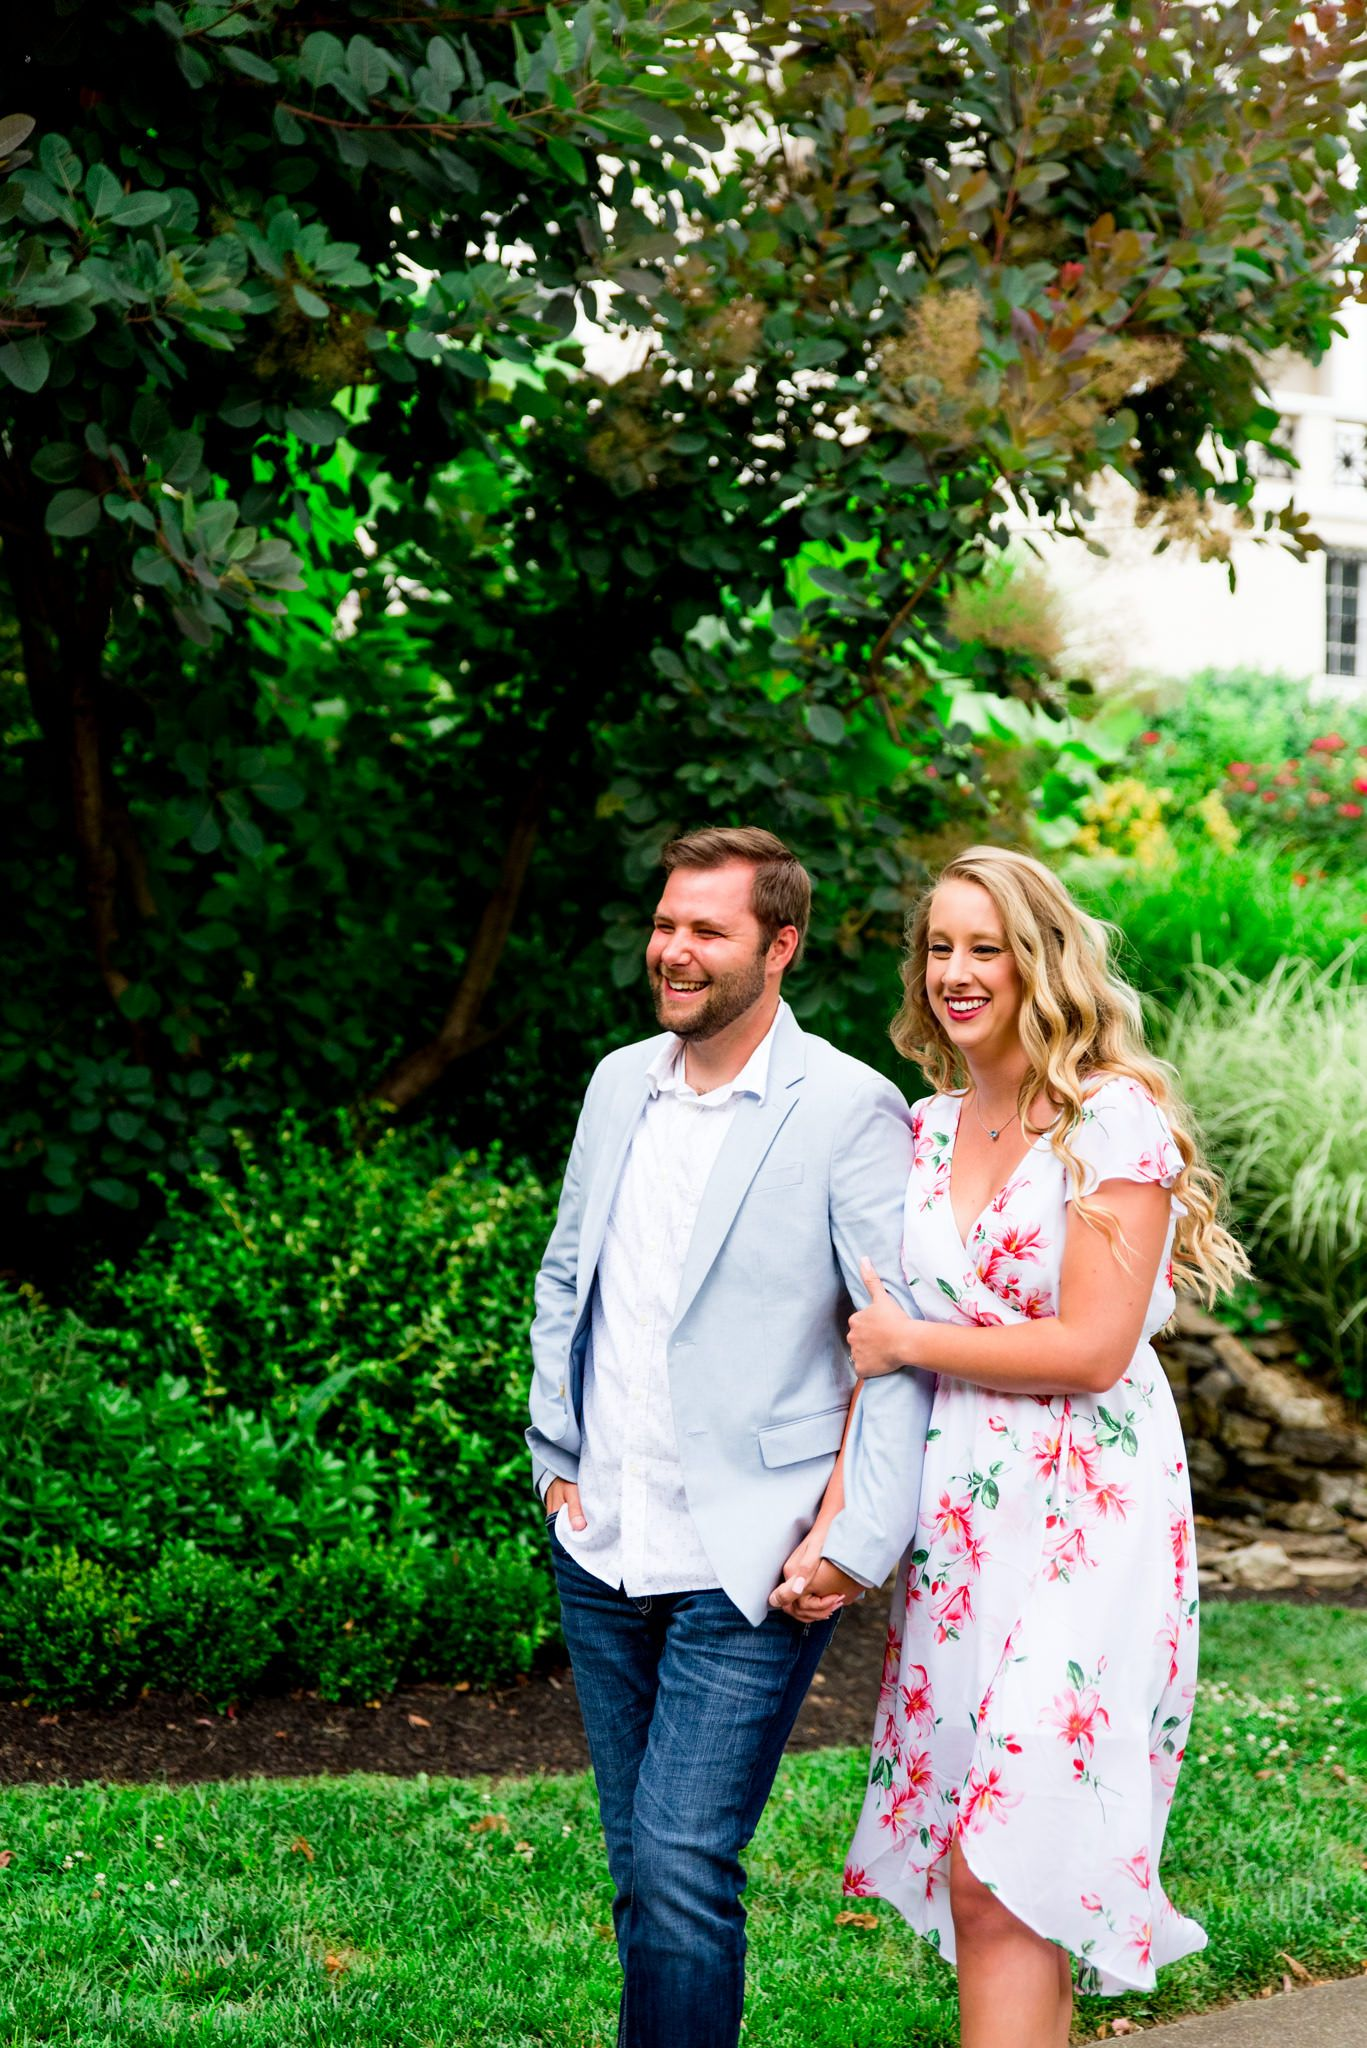 engaged couples in floral dress and light blue suit jacket and jeans walking in rainy Louisville and laughing